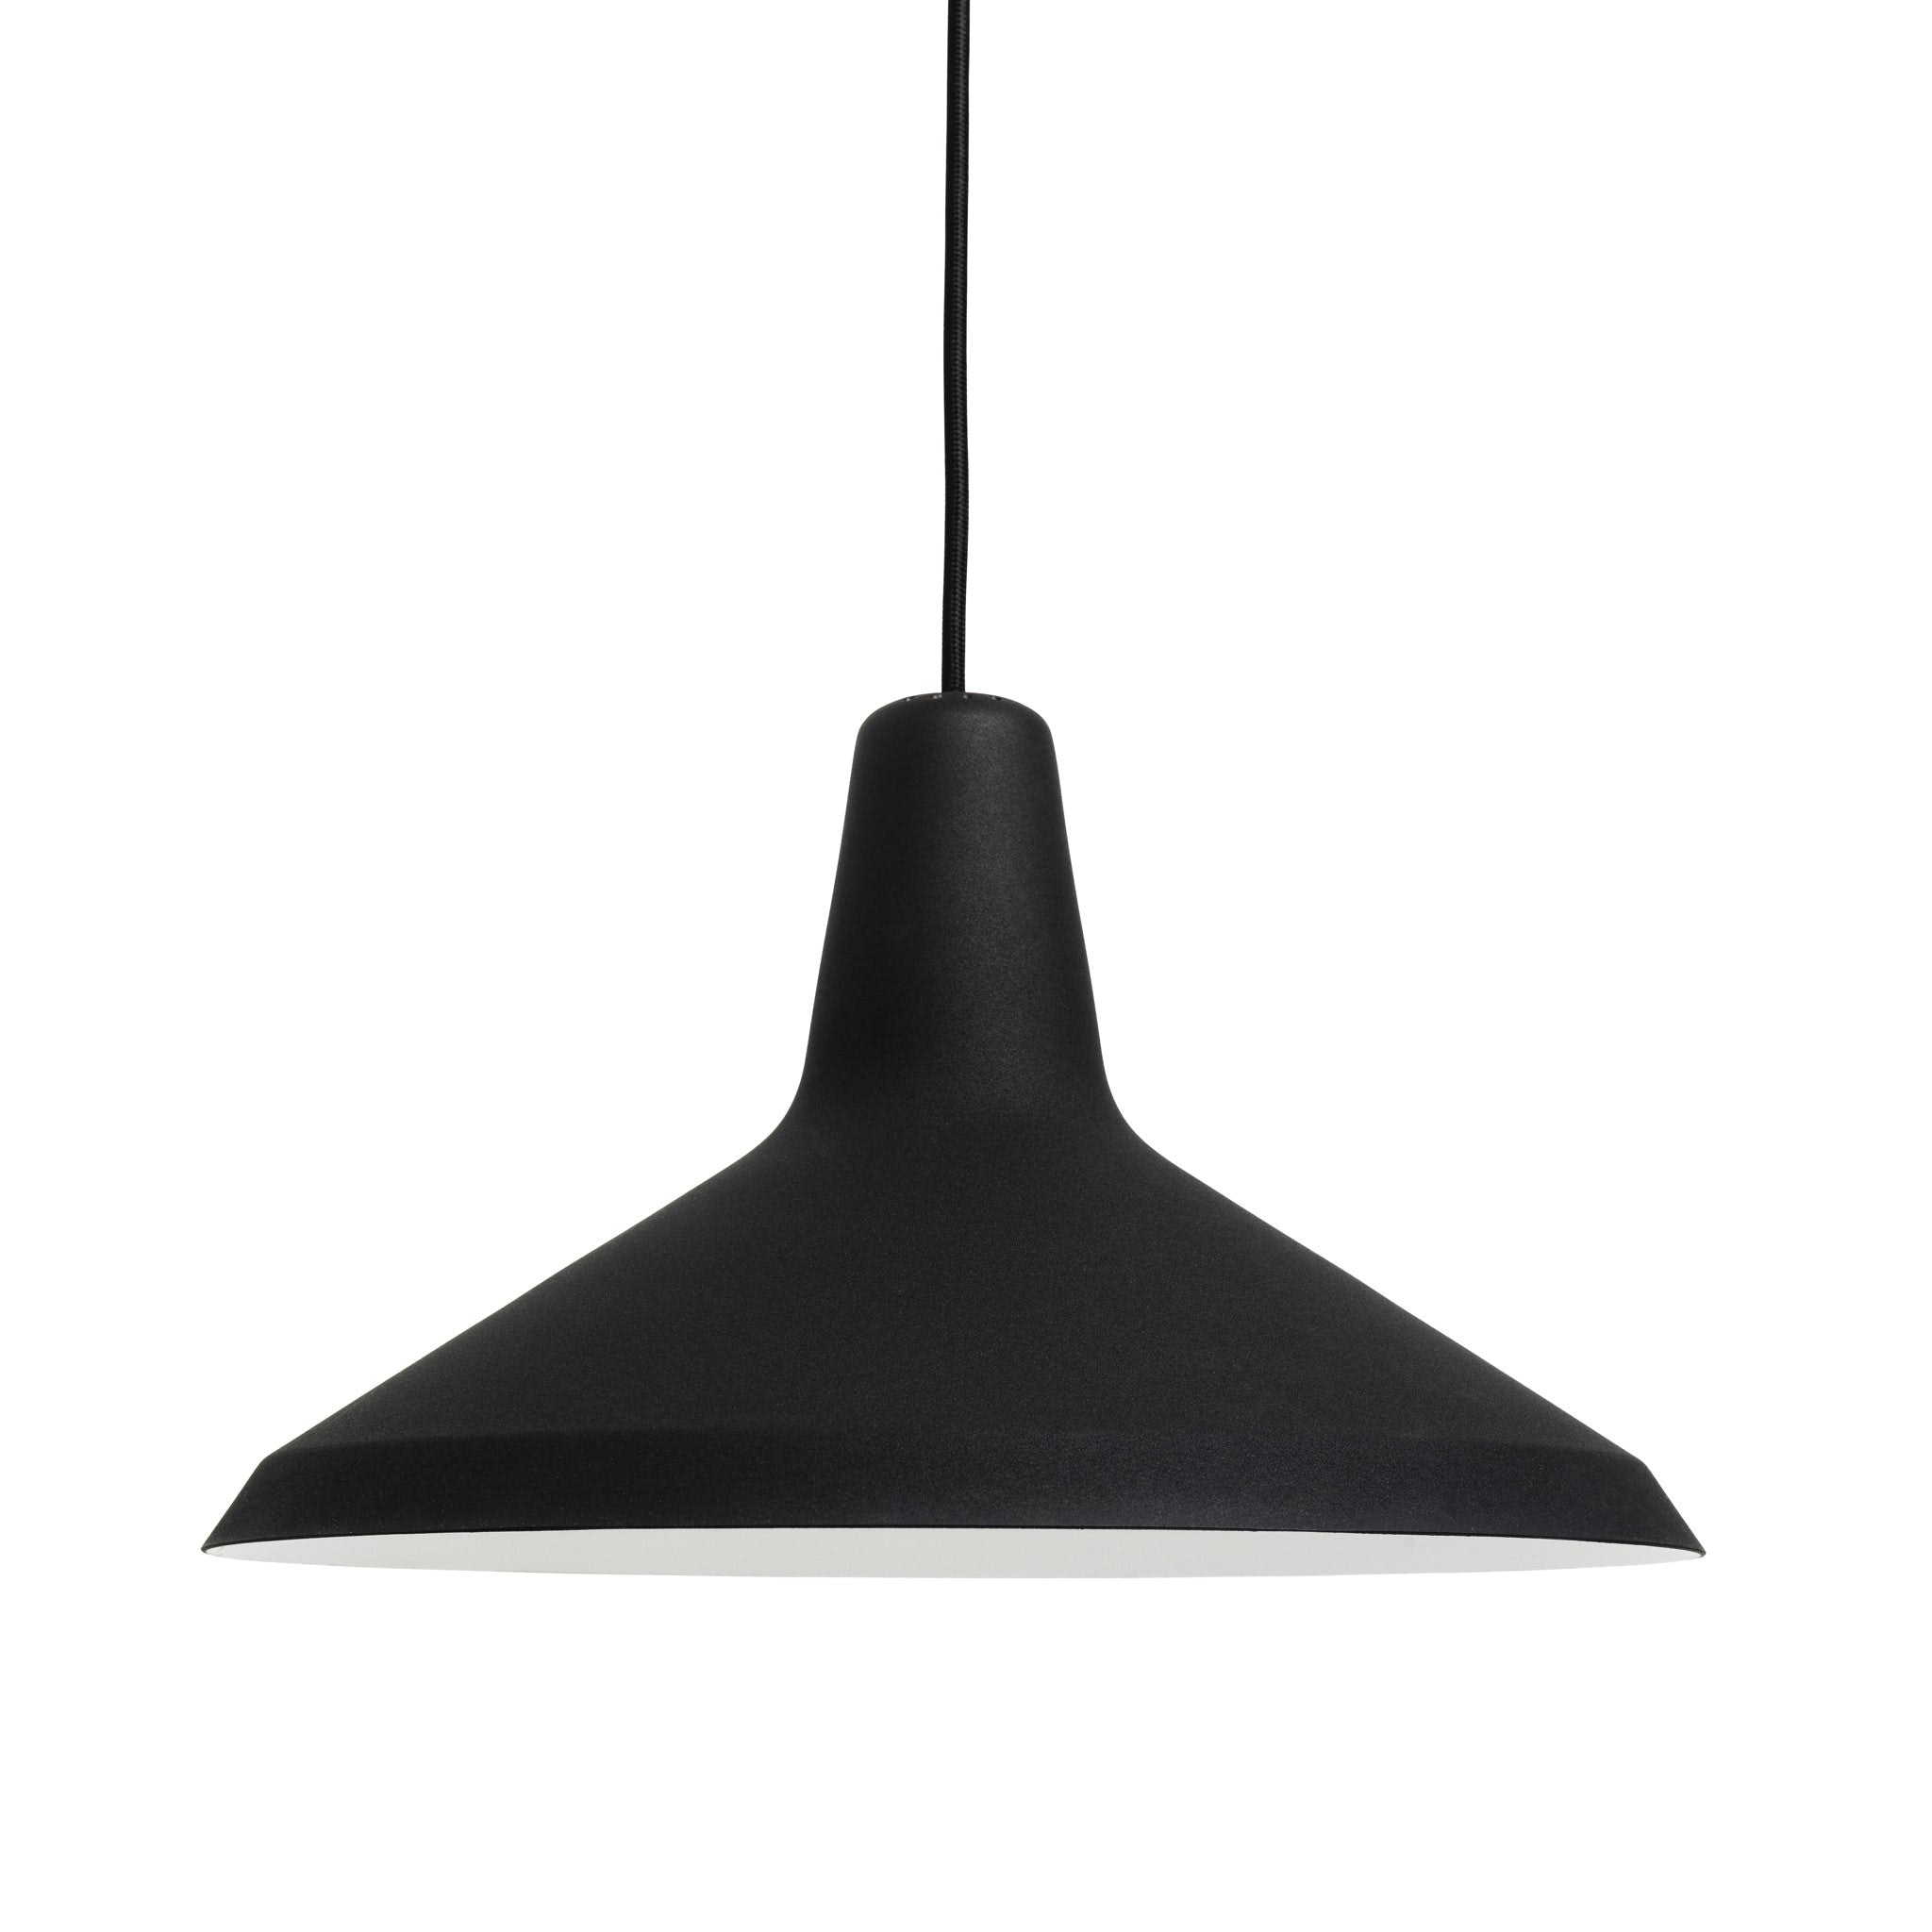 G10 Pendant Lamp by Greta Grossman